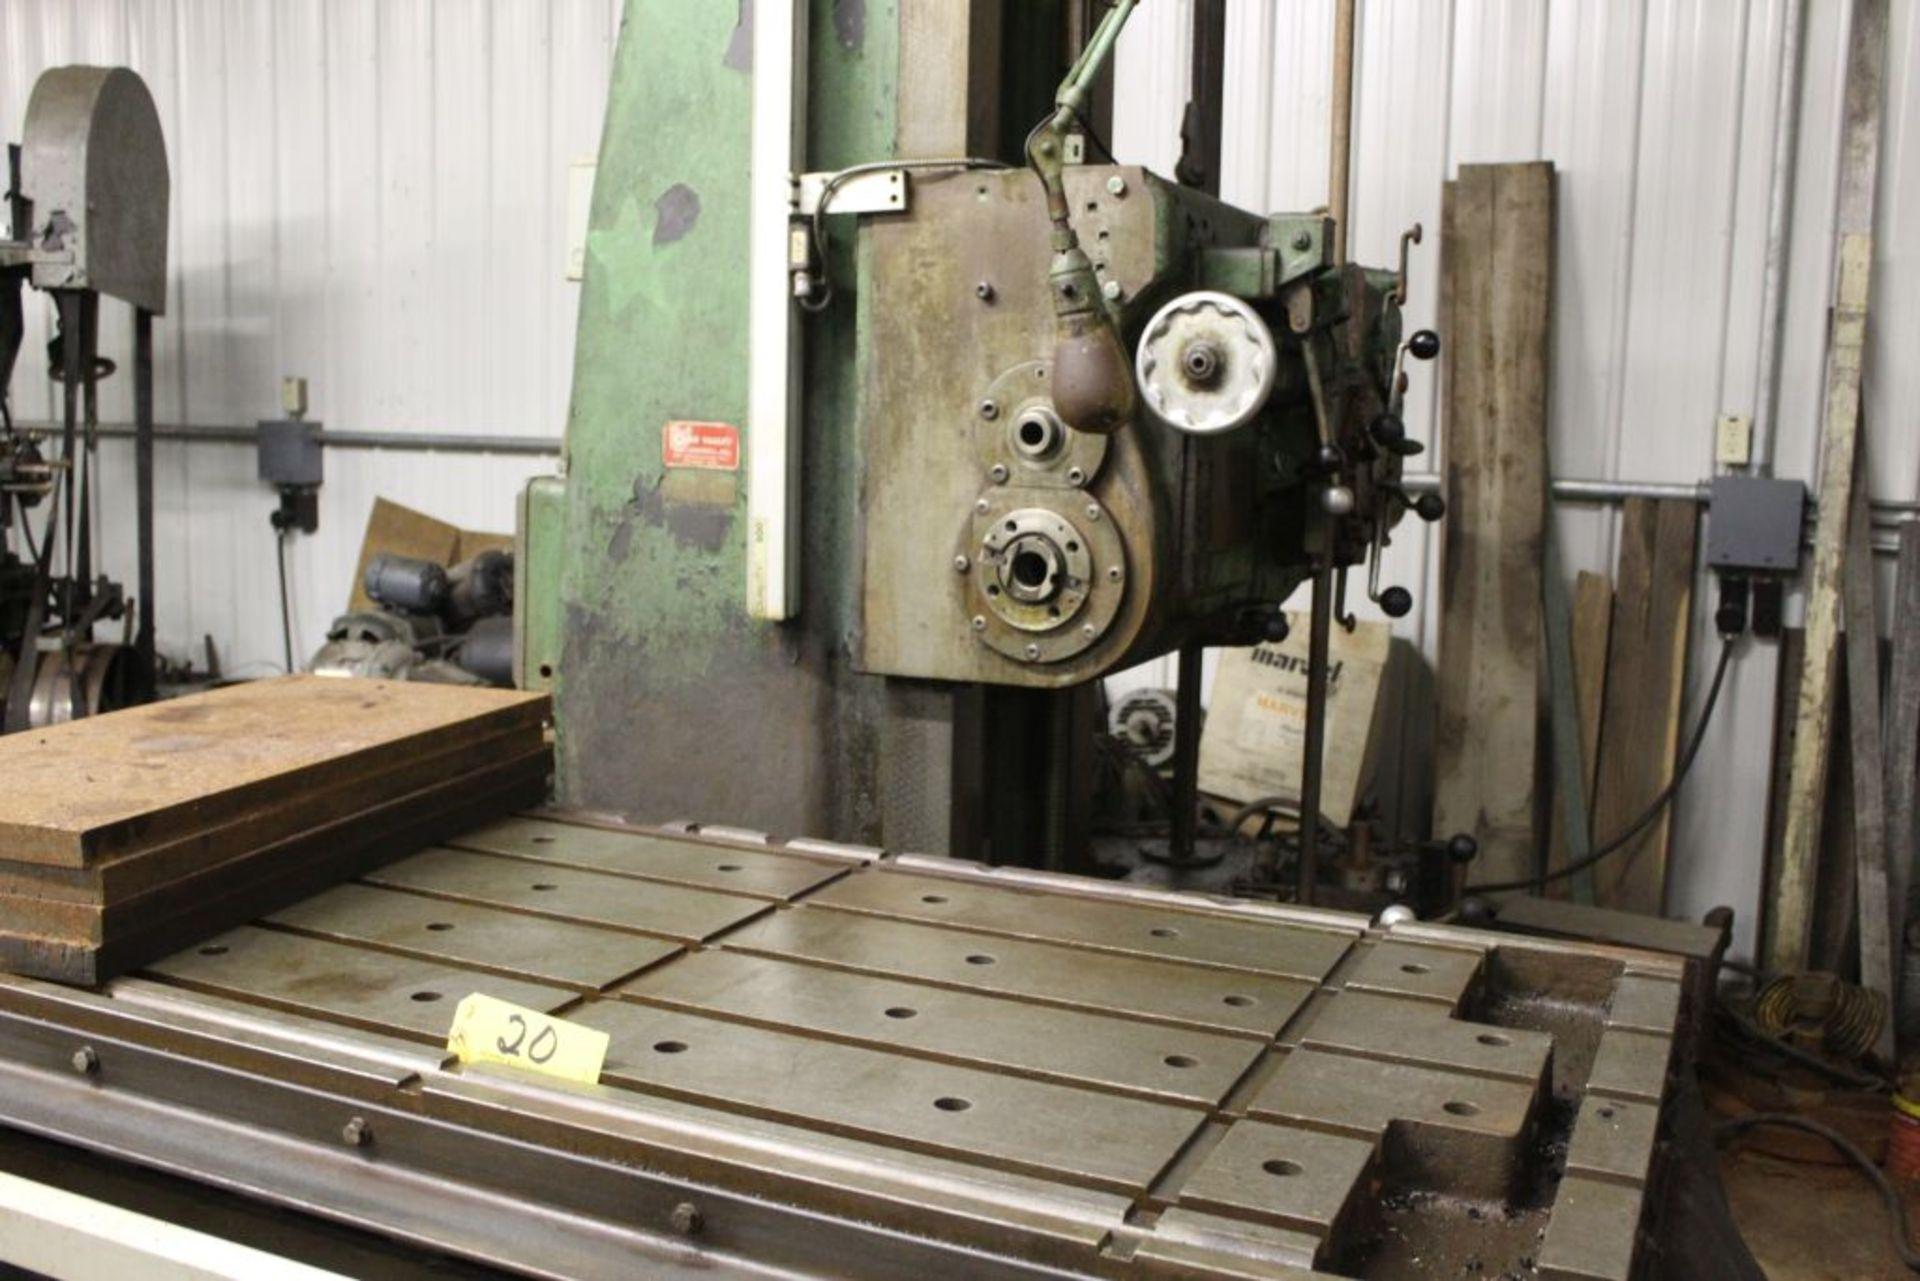 """Giddings & Lewis boring mill, No 30, 30"""" x 62"""" bed, 55"""" height adjustment, 13"""", EG&G digital read - Image 8 of 13"""